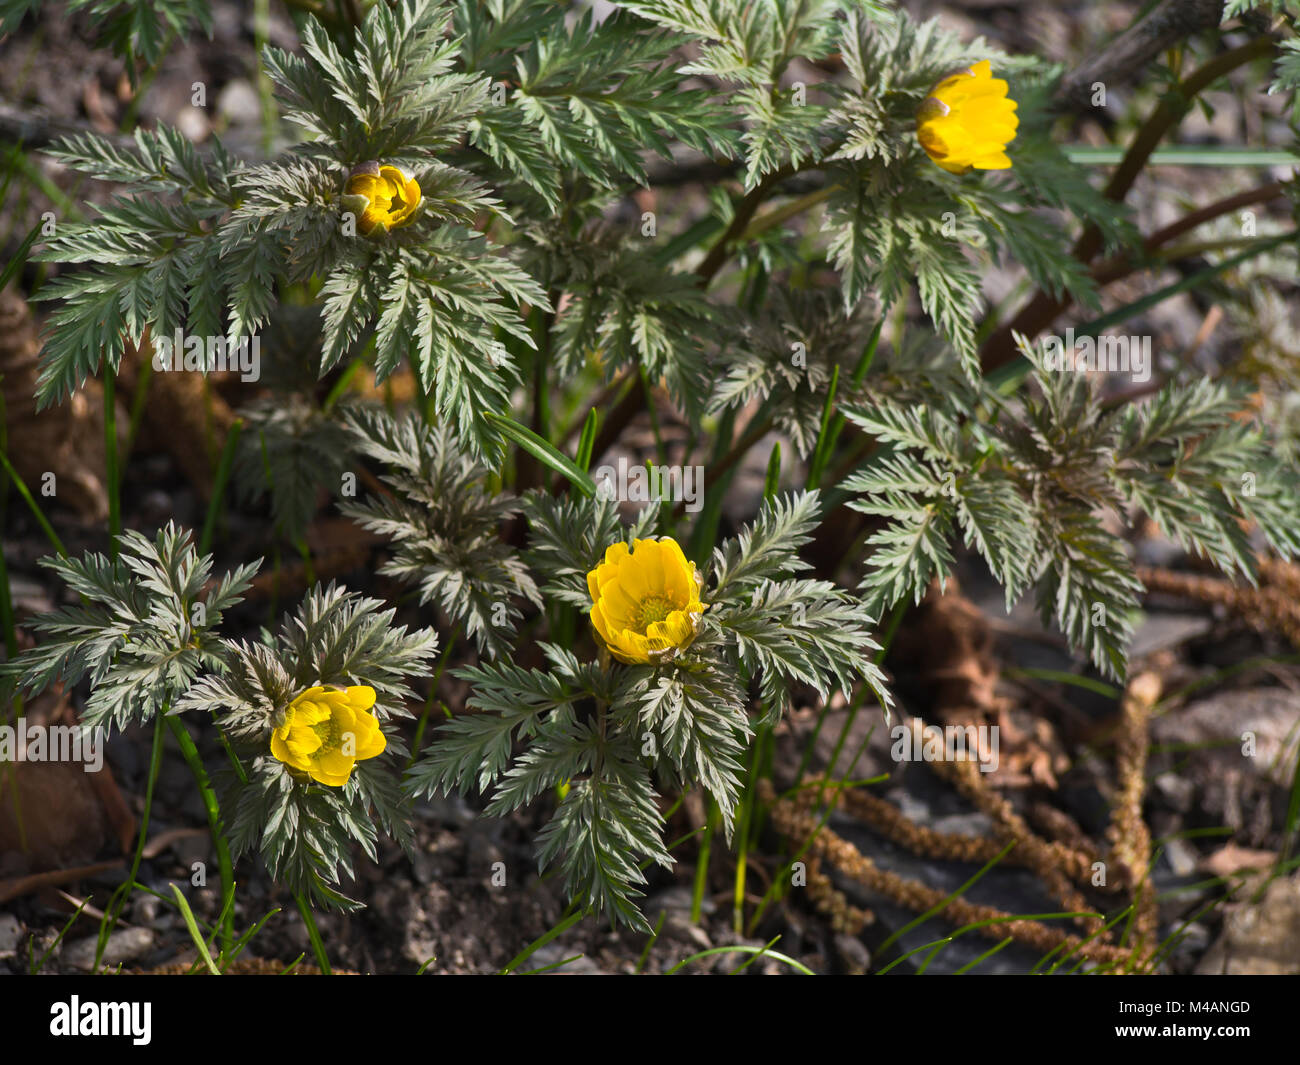 Pheasant's eye or Adonis amurensis, a perennial plant native to eastern Asian countries, here a springtime sight Stock Photo